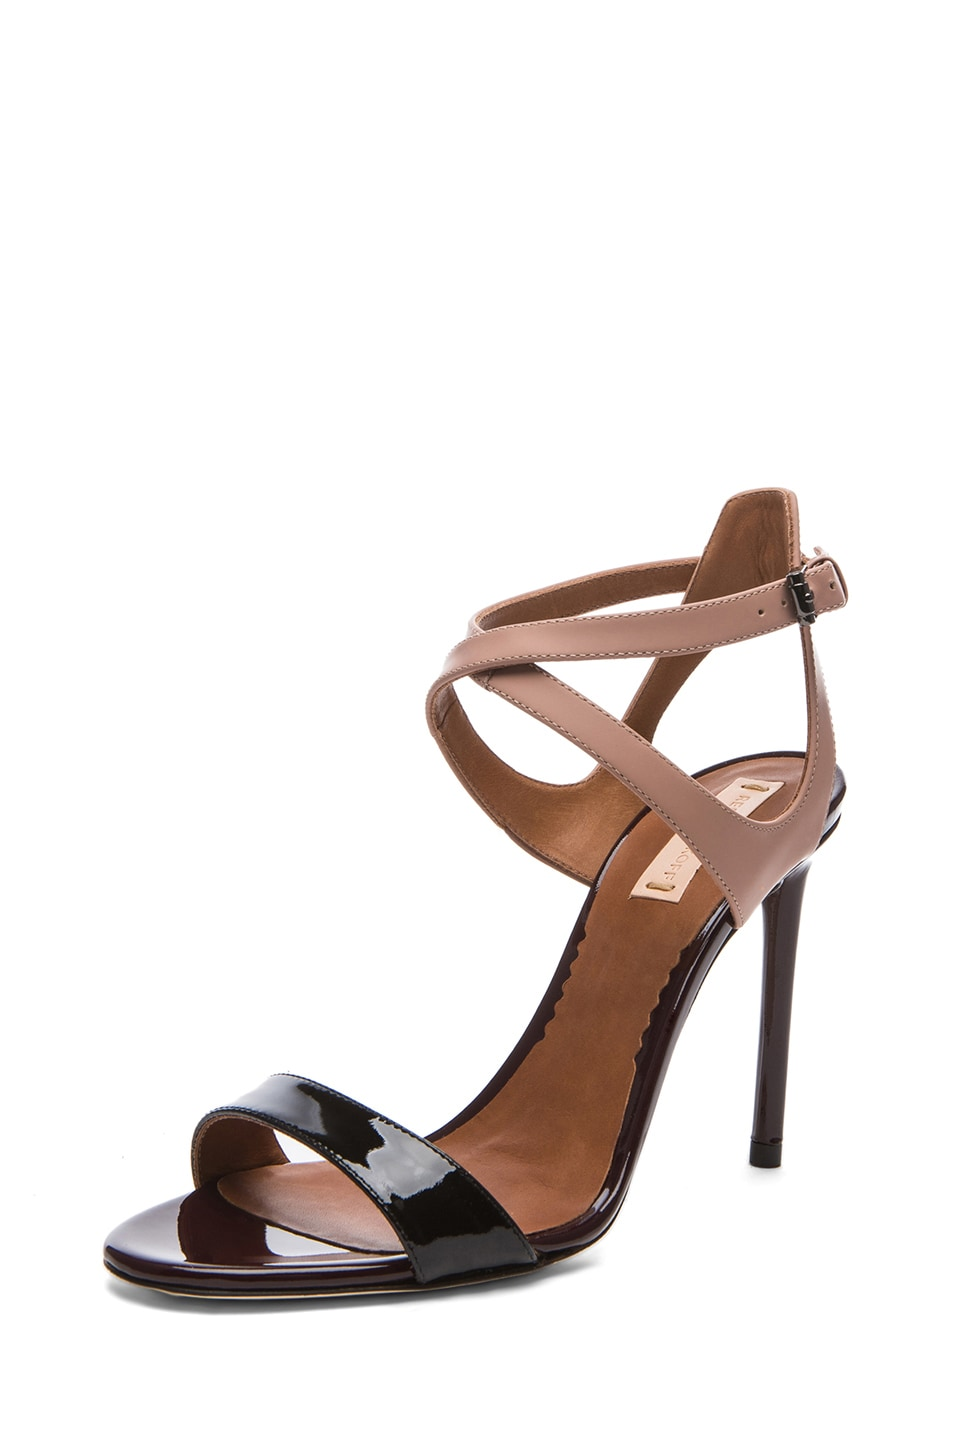 Image 2 of Reed Krakoff Glossy Leather Ankle Harness Sandals in Black & Nude